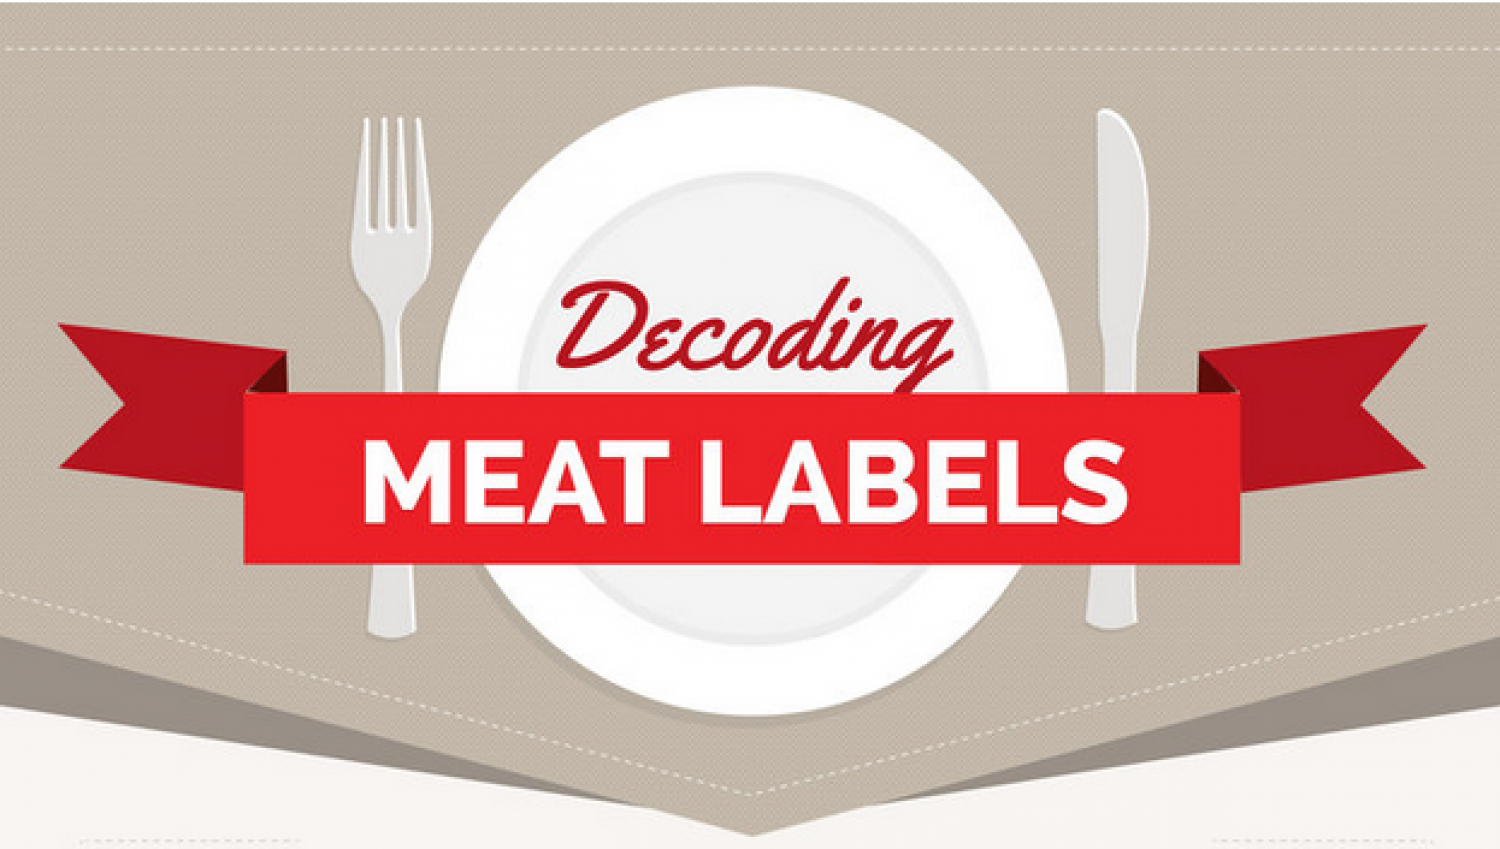 Decoding Meat Labels Infographic